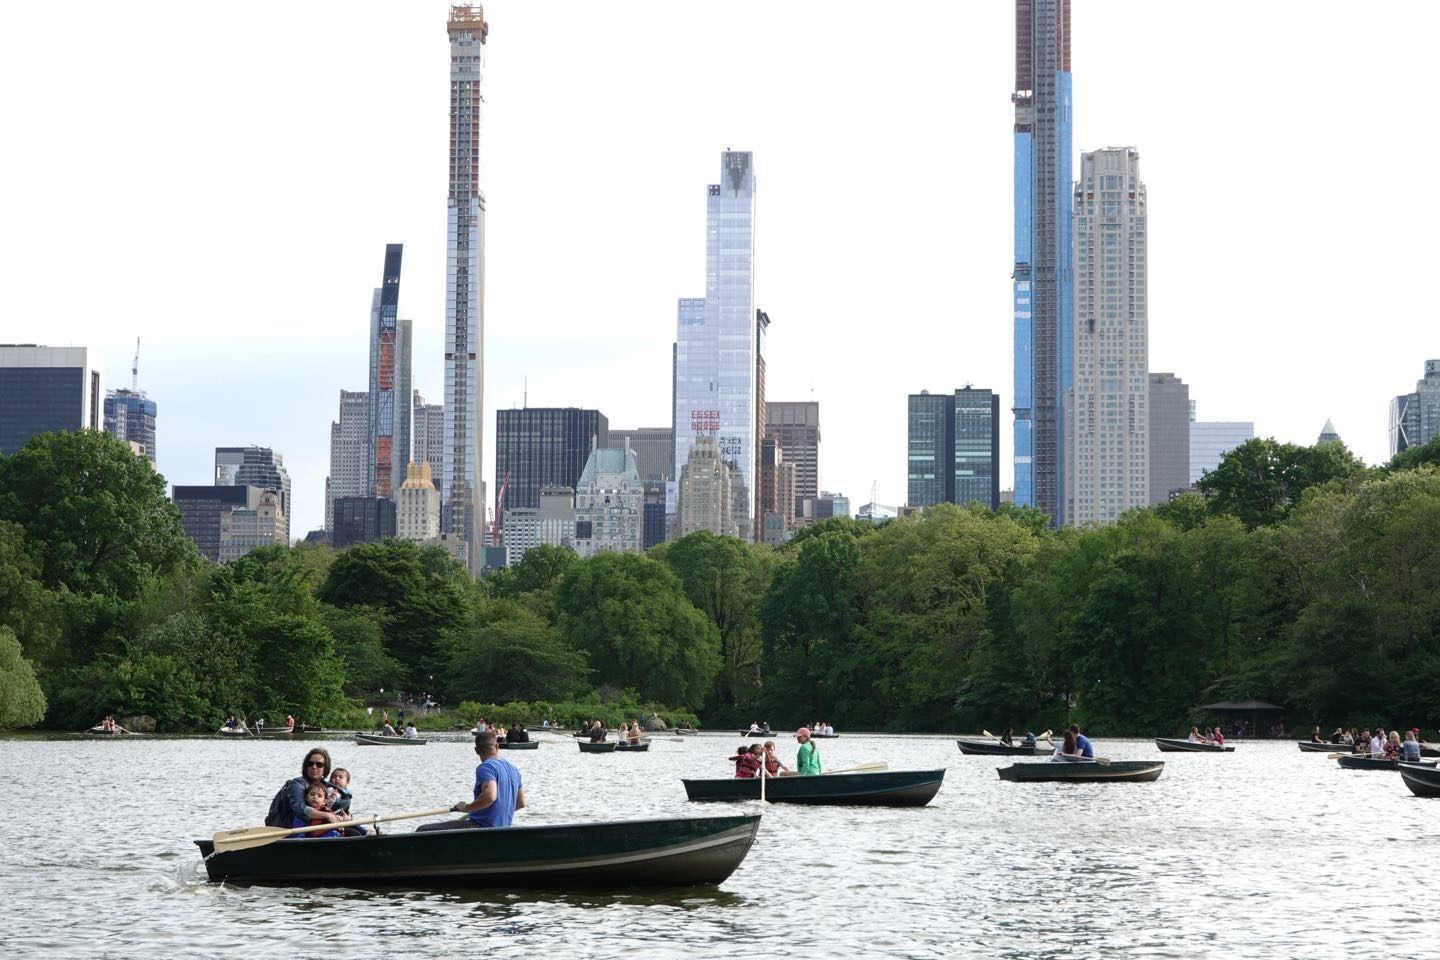 Top attractions in Central Park, NYC.